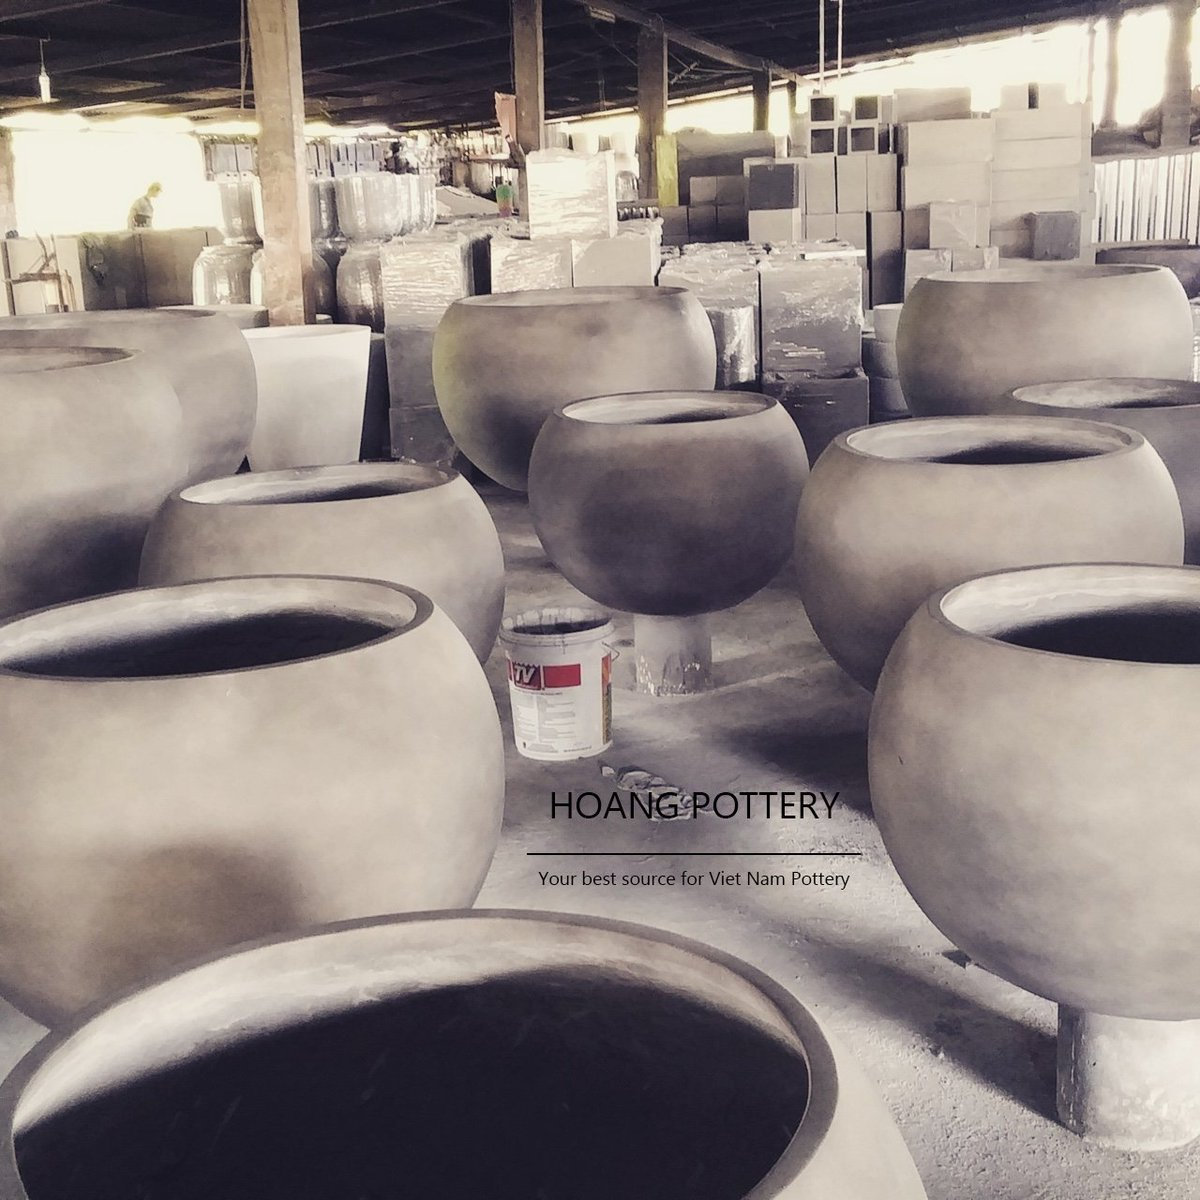 #Raw #Cement #planters at #factory  Wish you all have a good #weekend!  #vietnam #pottery #potterysupplier #handmade #decor #decoration<br>http://pic.twitter.com/1XbYDH78Ah